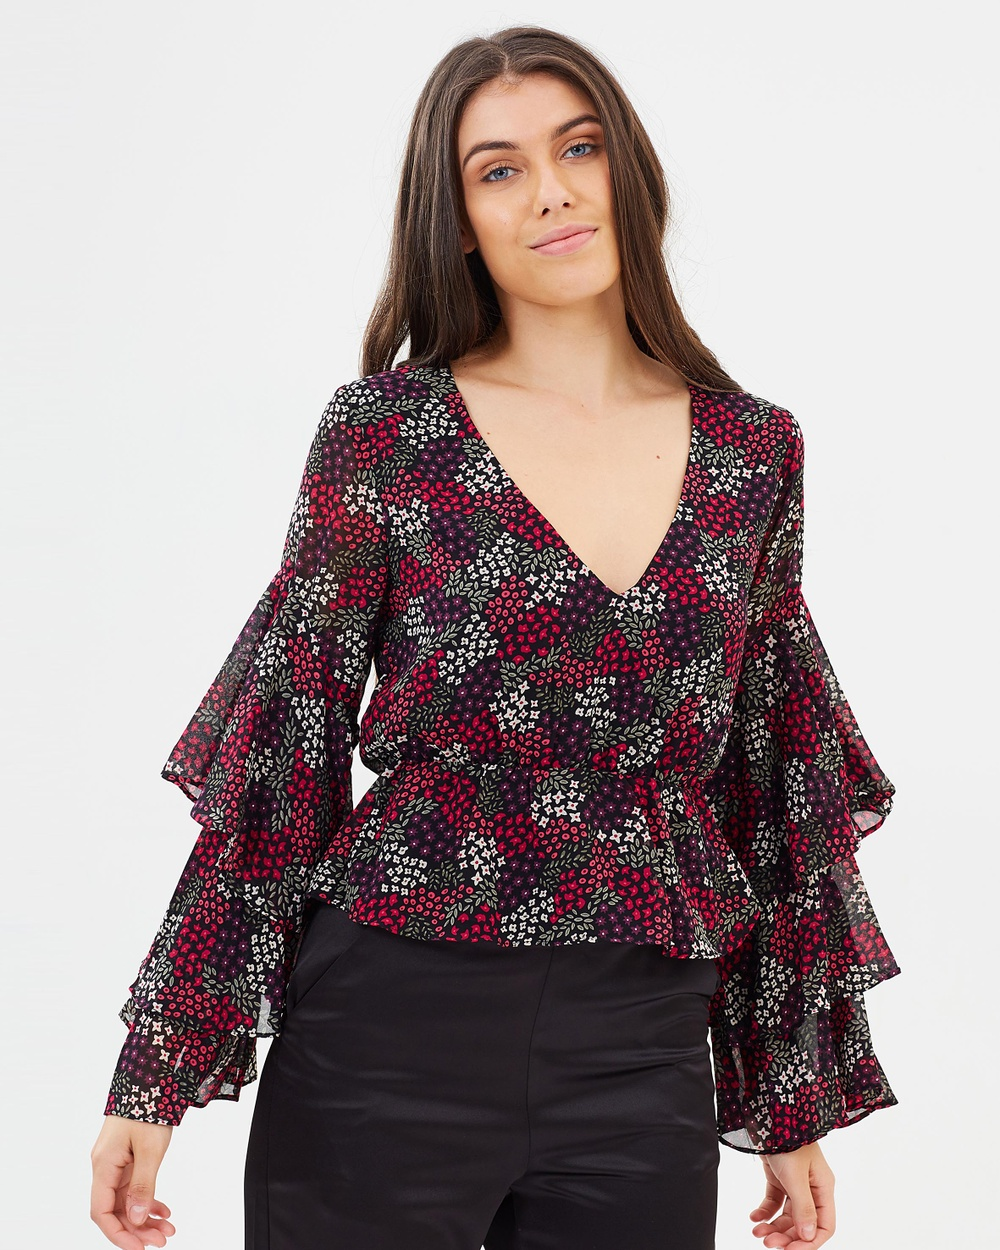 Atmos & Here ICONIC EXCLUSIVE Larissa Deep V Top Cropped tops Floral ICONIC EXCLUSIVE Larissa Deep V Top